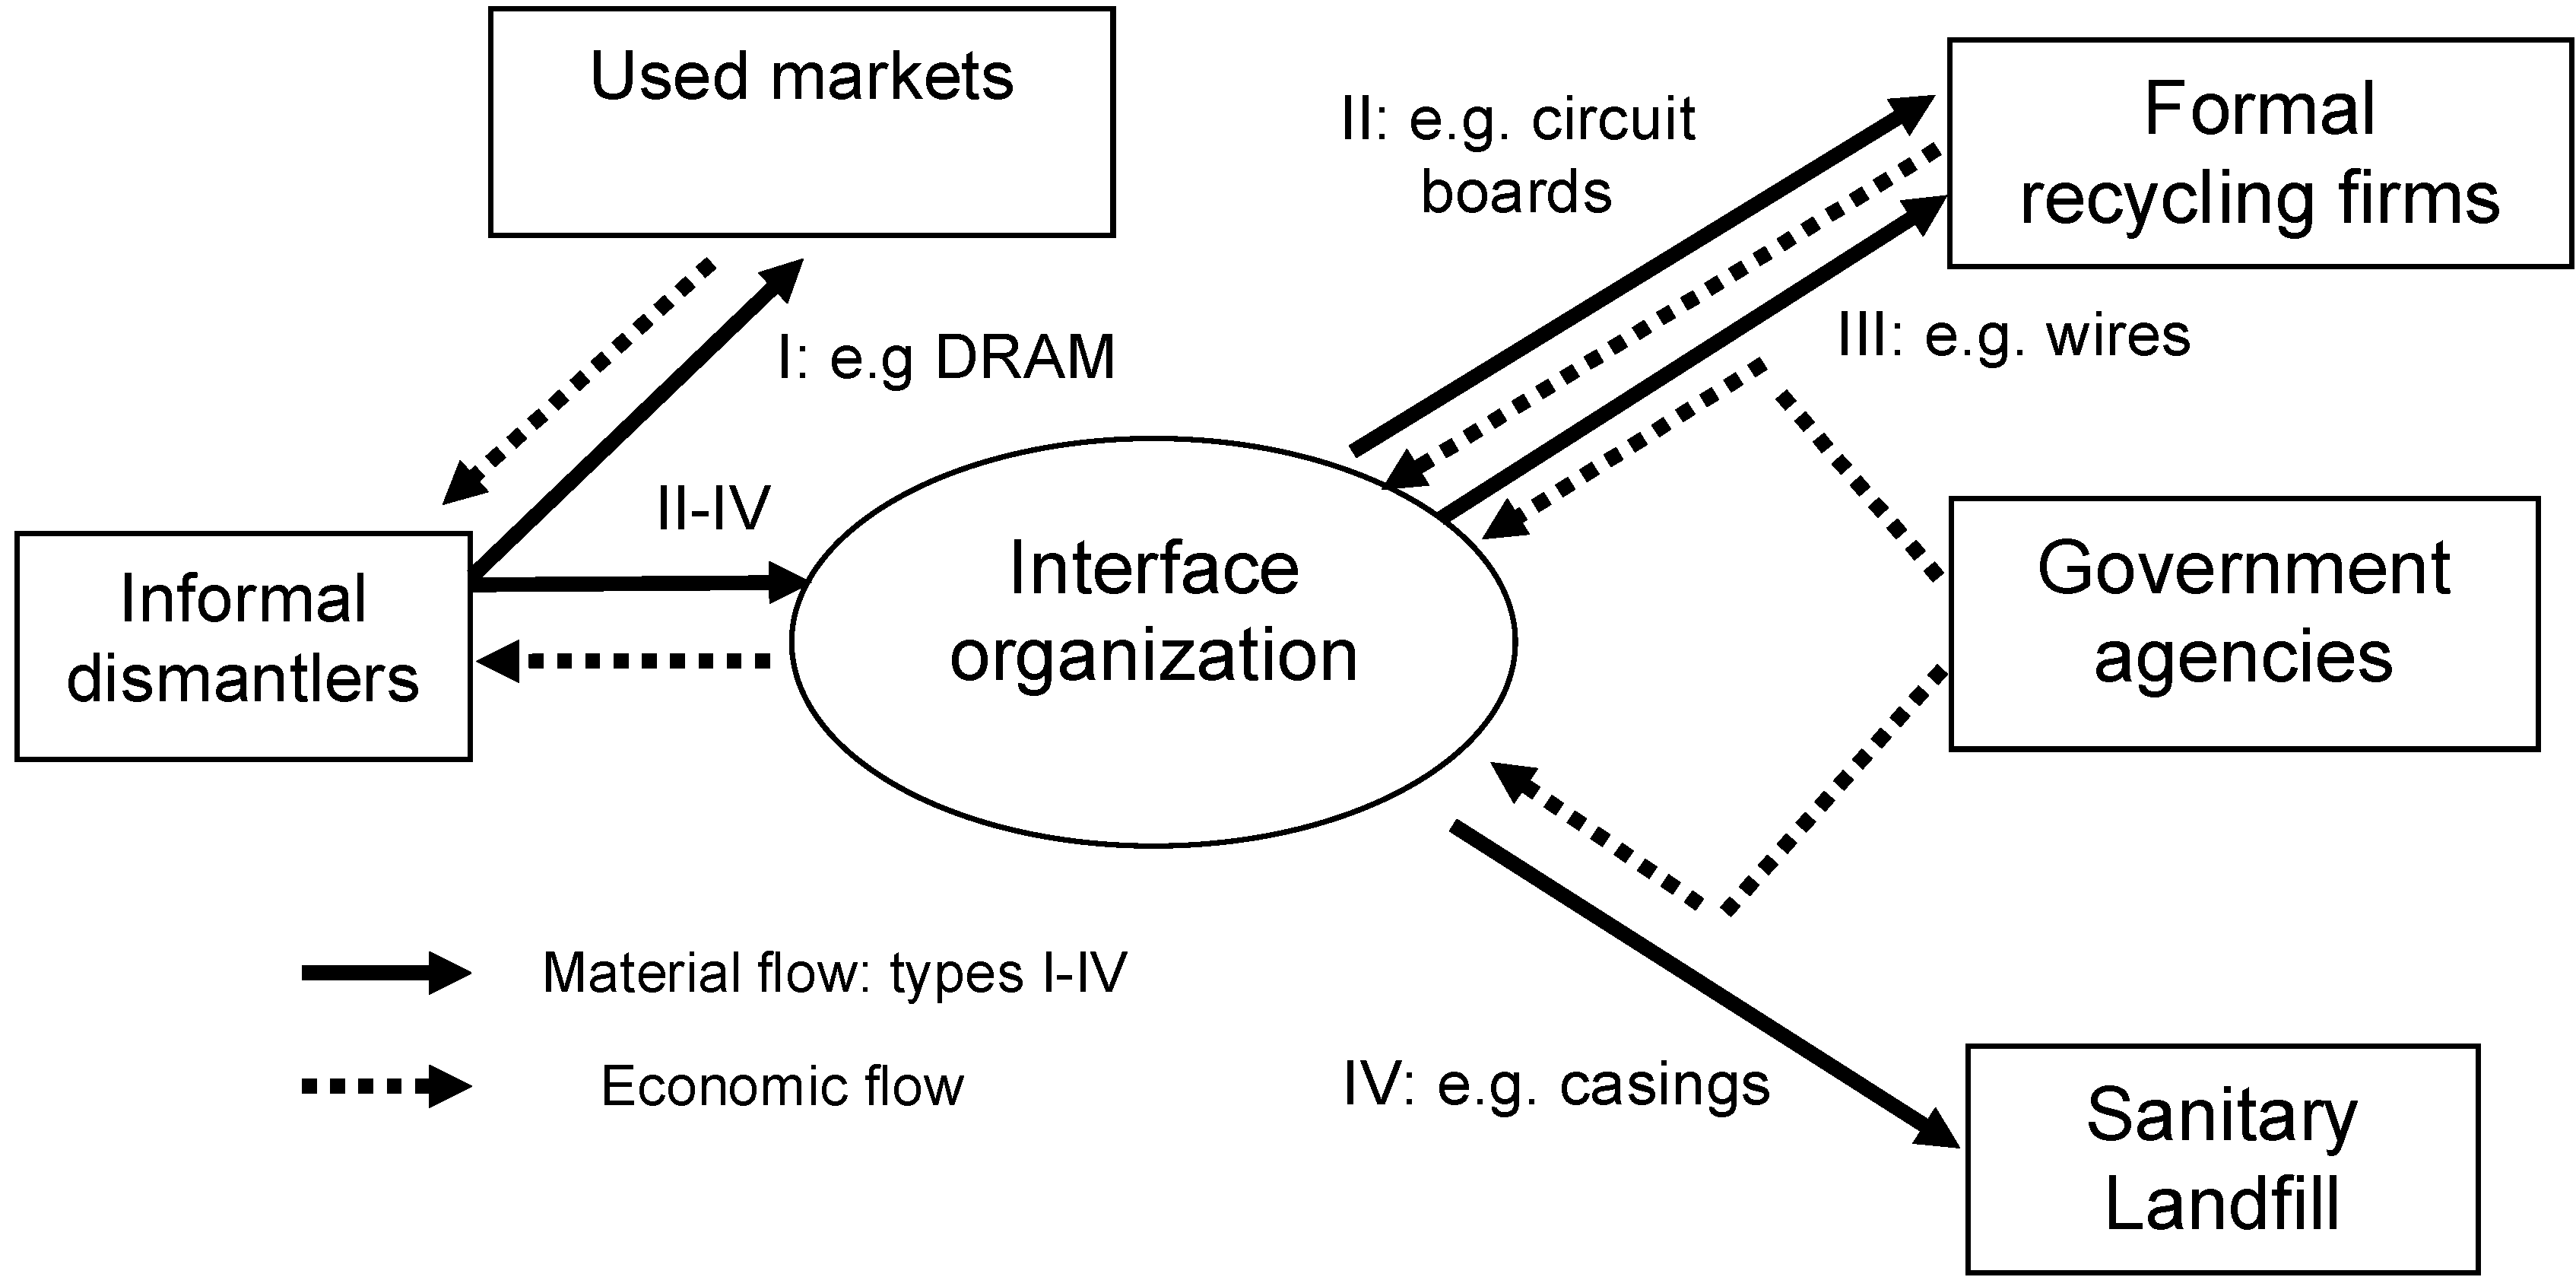 Challenges Free Full Text Linking Informal And Formal Though It Is Possible To Perform Computer Circuit Board Recycling At 04 00136 G002 1024